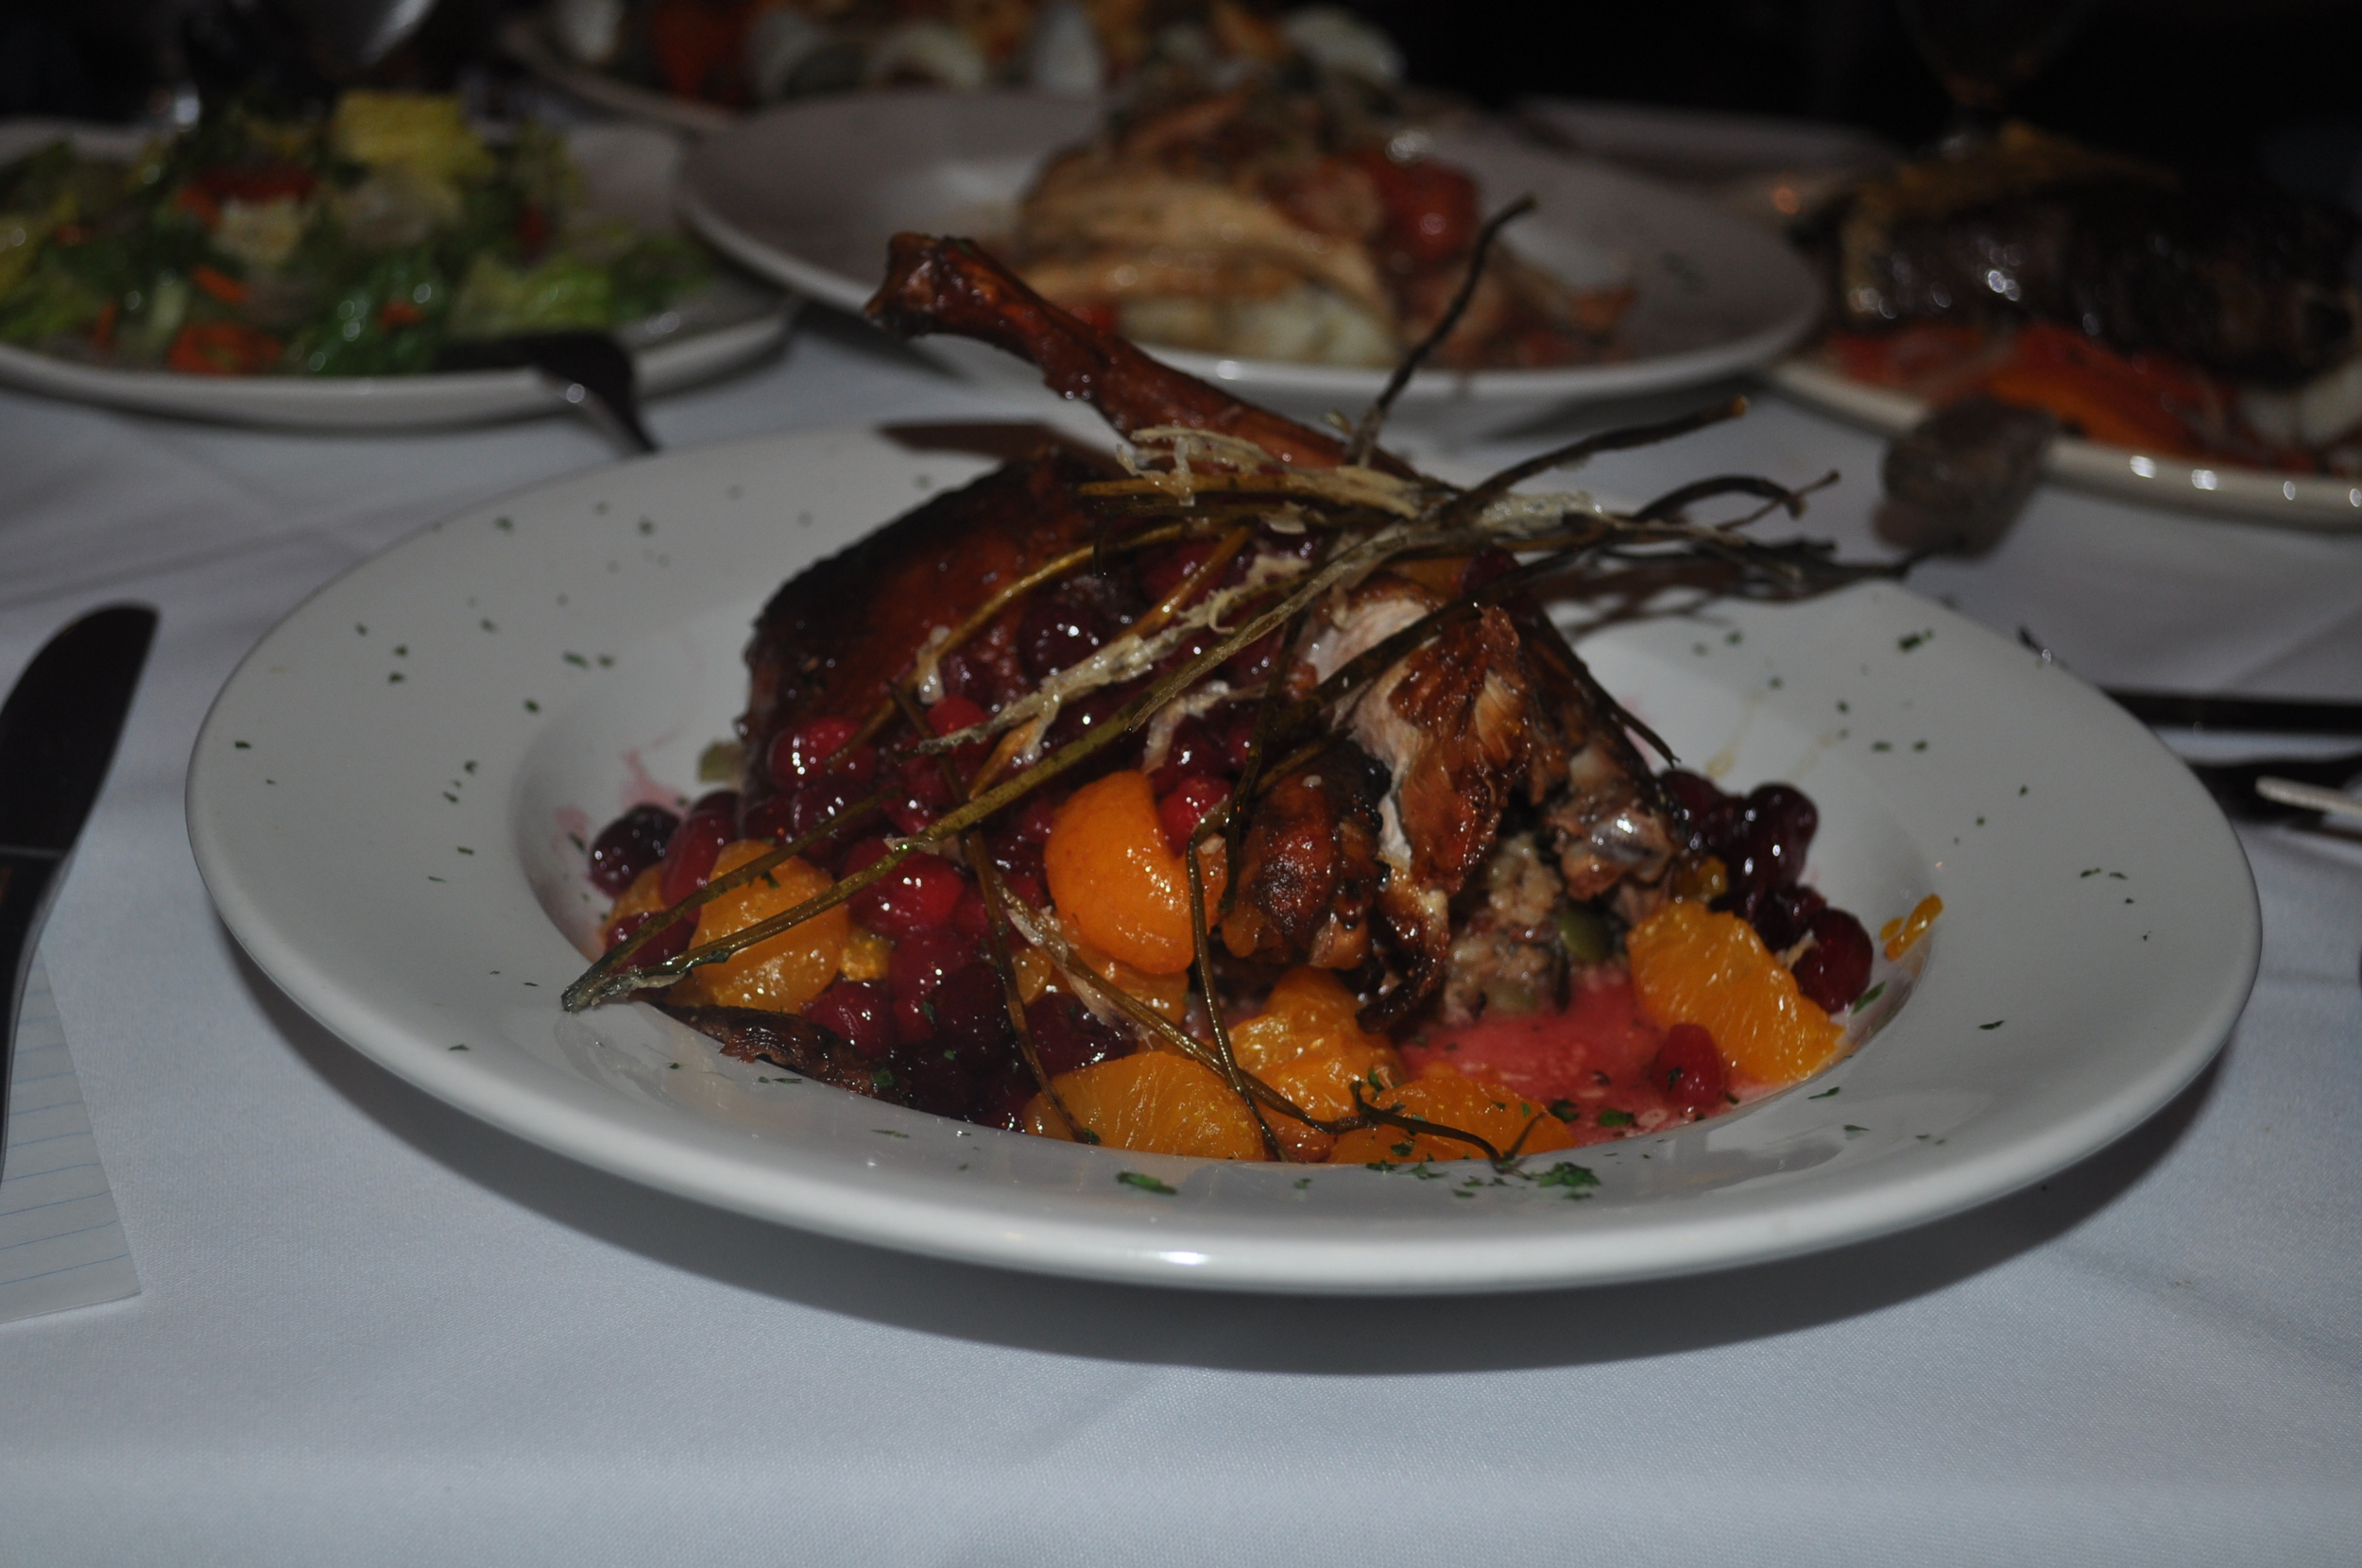 Fall-off-the-bone tender Long Island Duck, dressed in oranges, plump cranberries and toasted pumpkin seeds, is autumn incarnate.